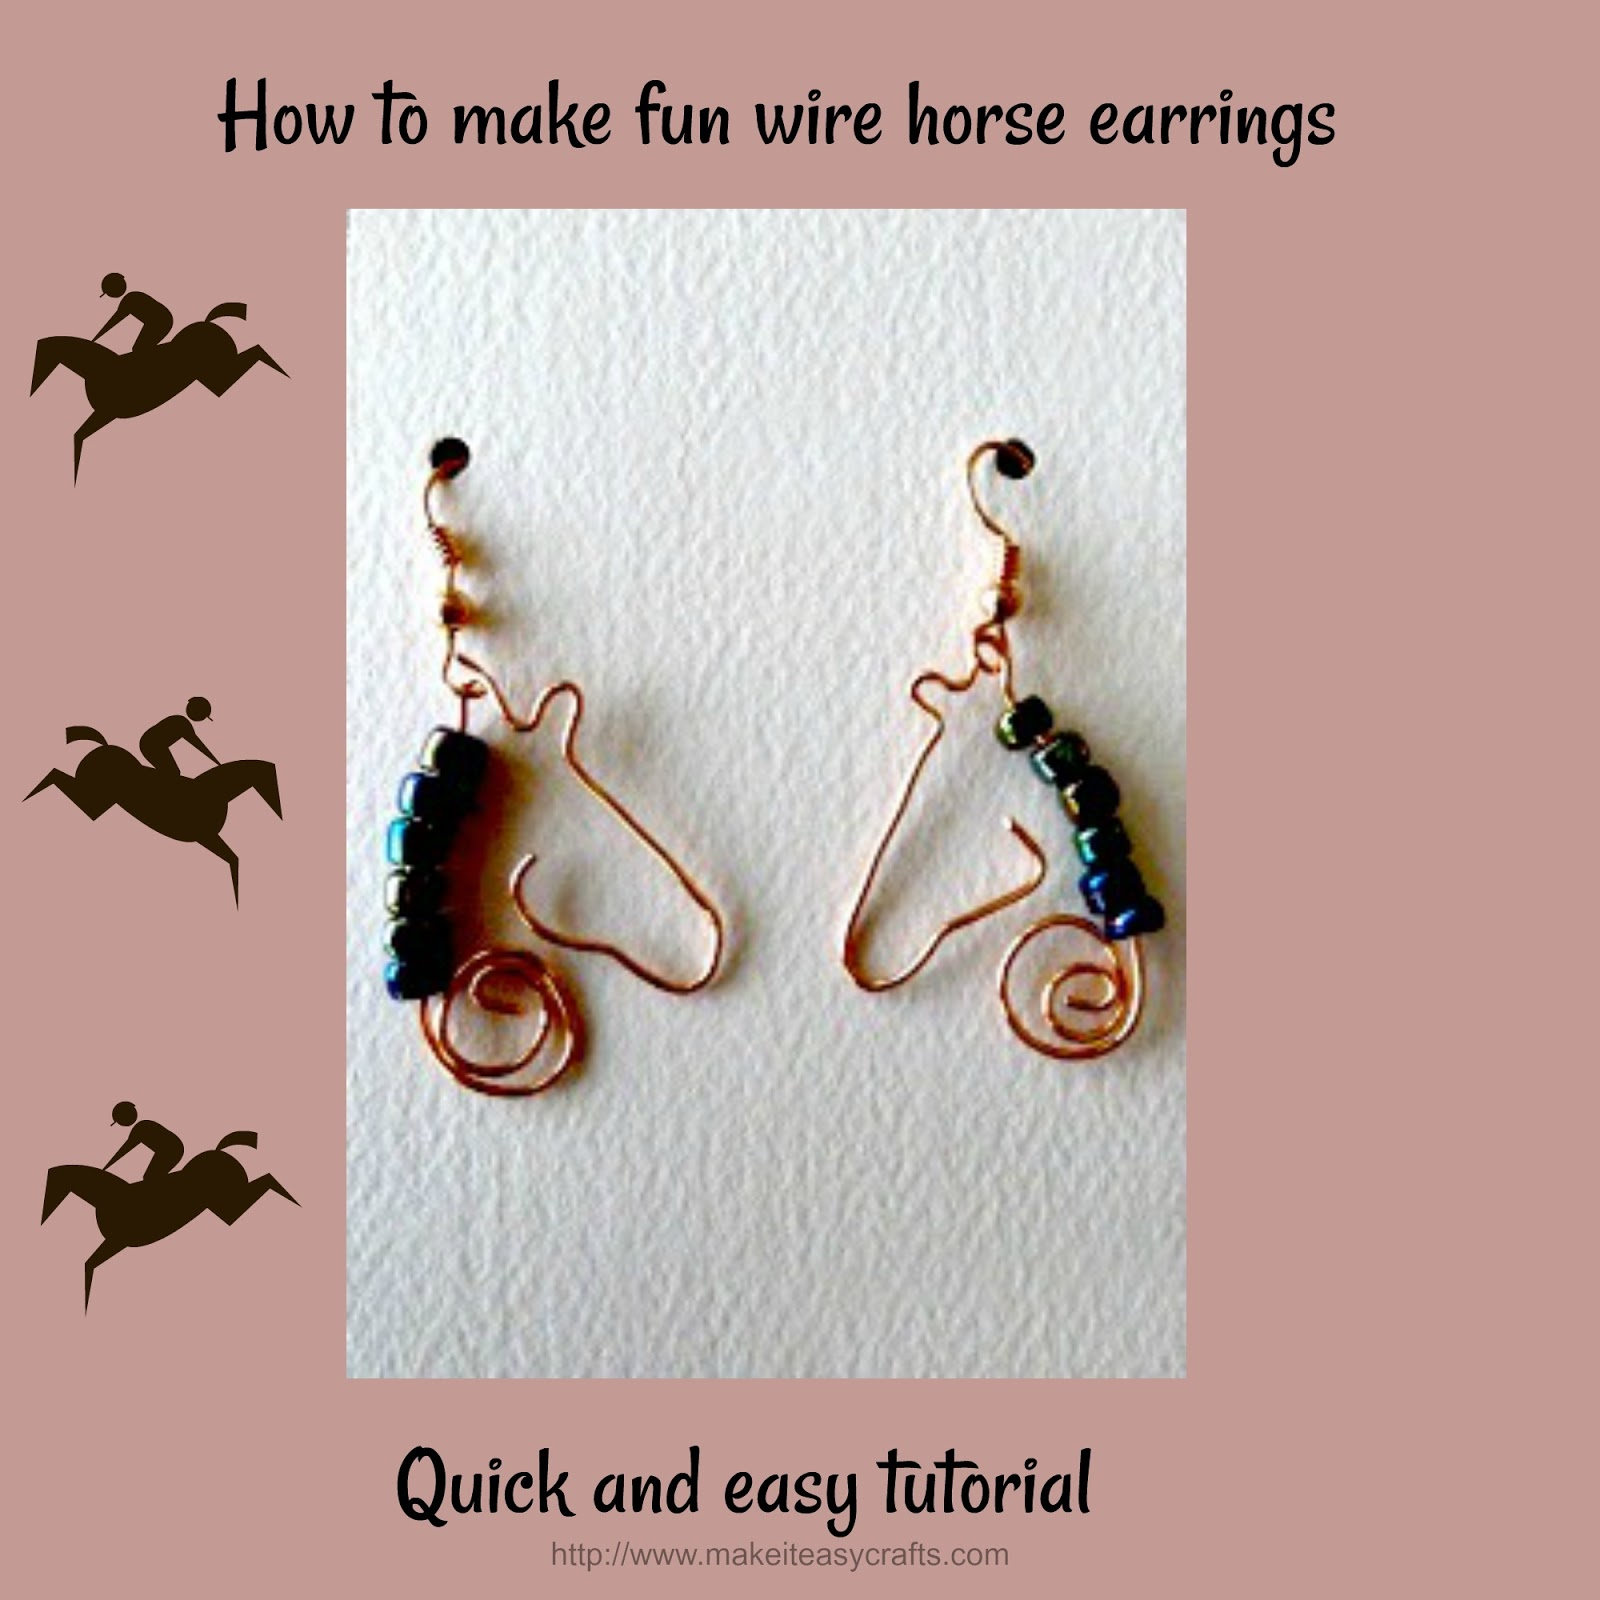 Make it easy crafts: How to make fun wire horse silhouette earrings